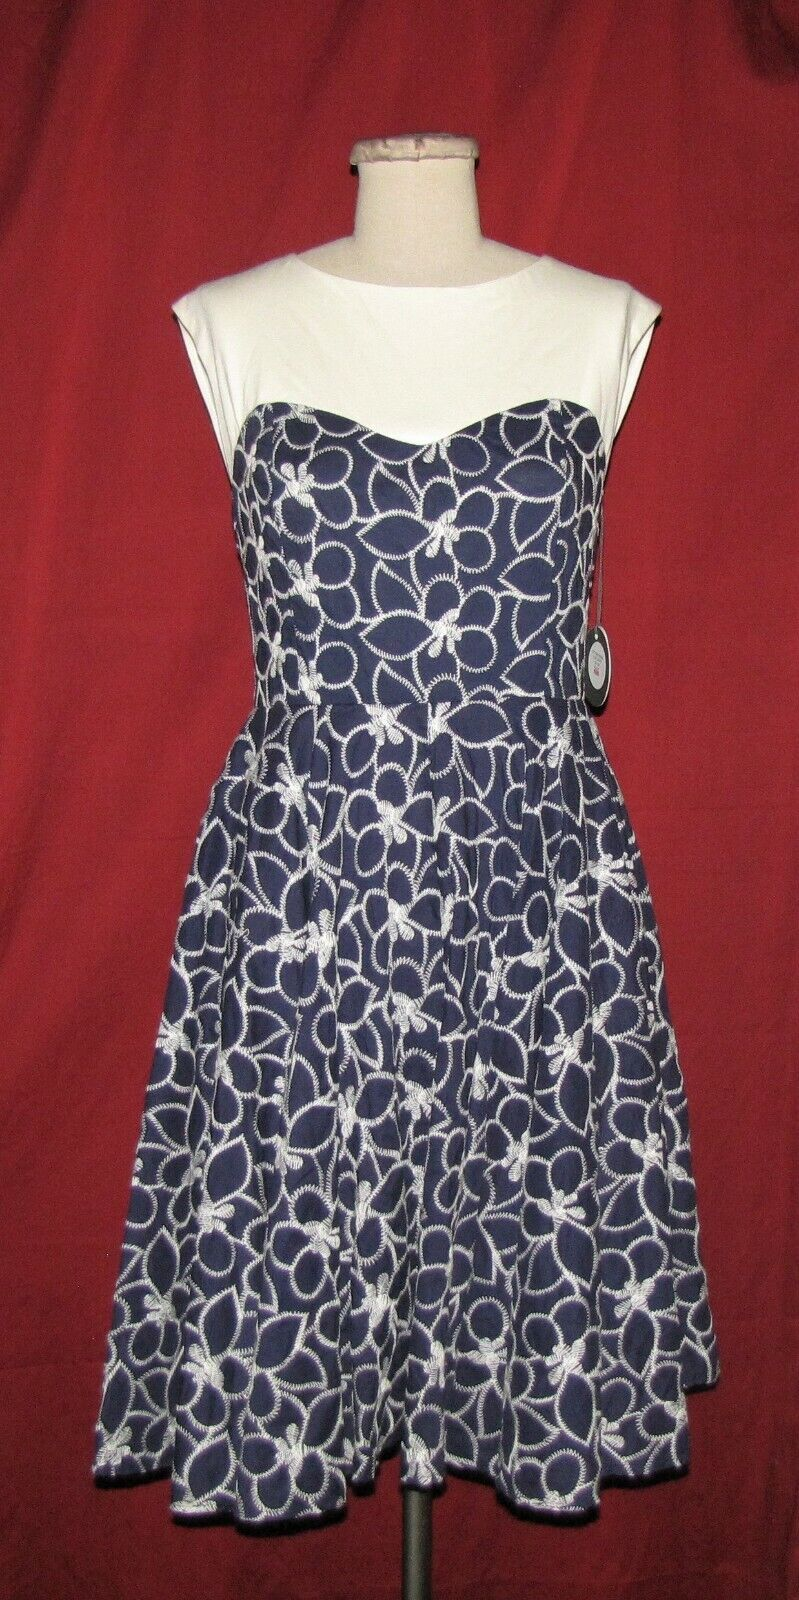 Eva Franco bluee & Ivory Embroidered Floral Pattern Sleevless A-Line Dress 10 NWT